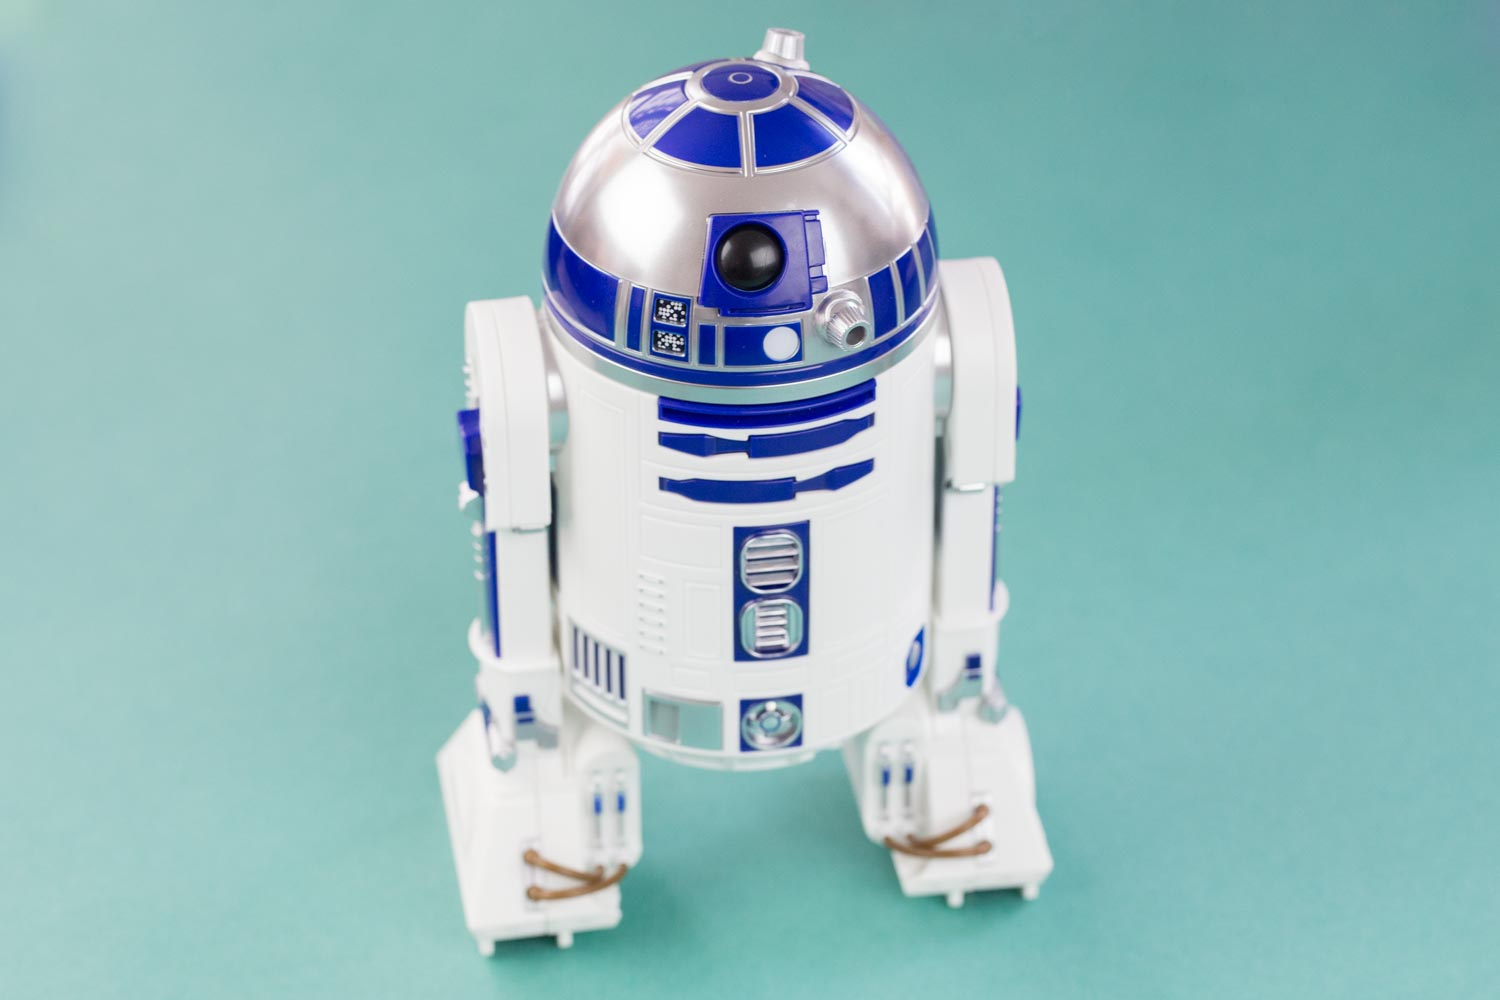 sphero r2d2 star wars toy